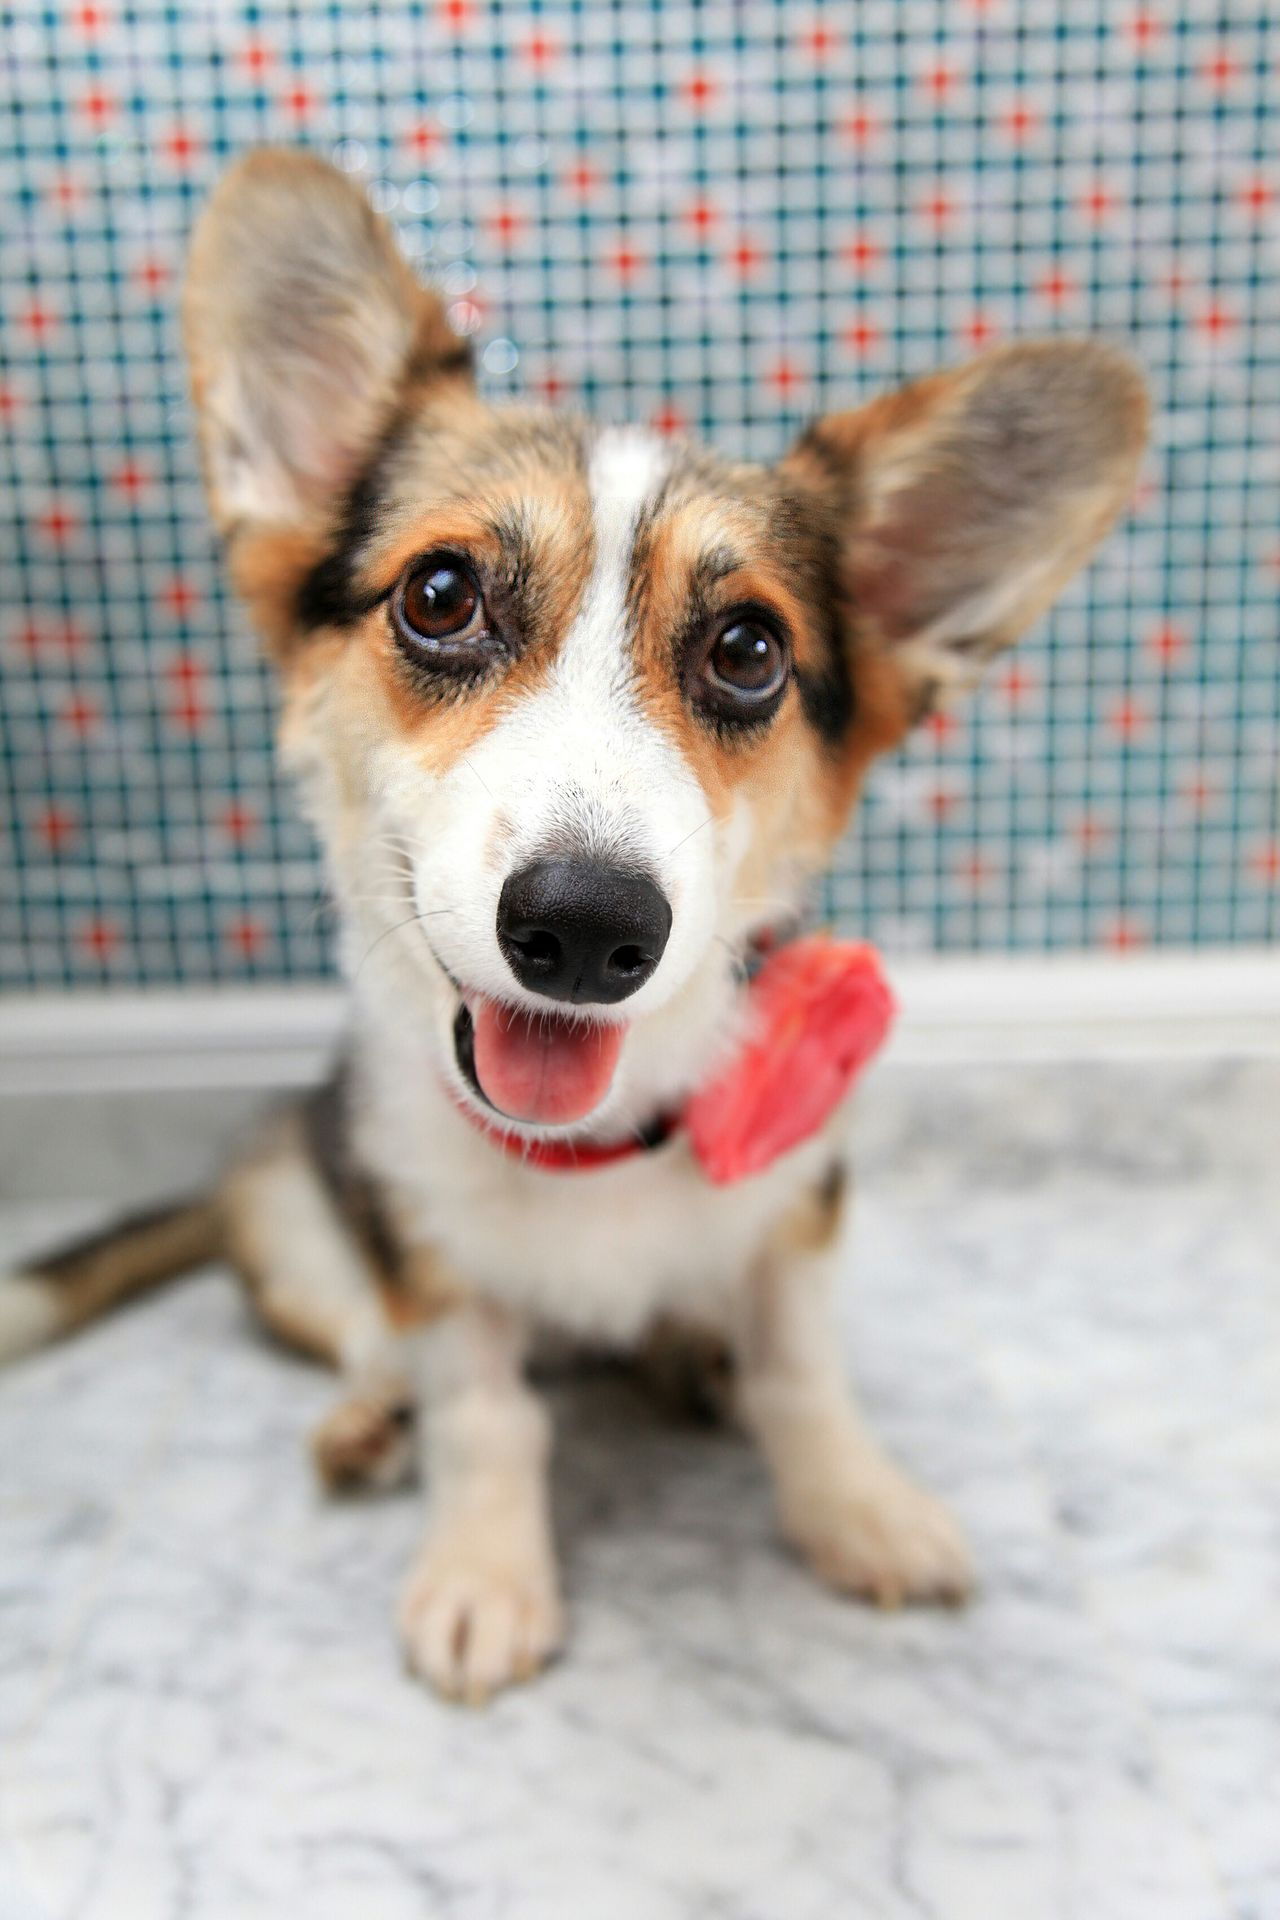 Corgi Pets Pets Corner I Love My Dog Dog Pet Pet Photography  The Portraitist - 2015 EyeEm Awards